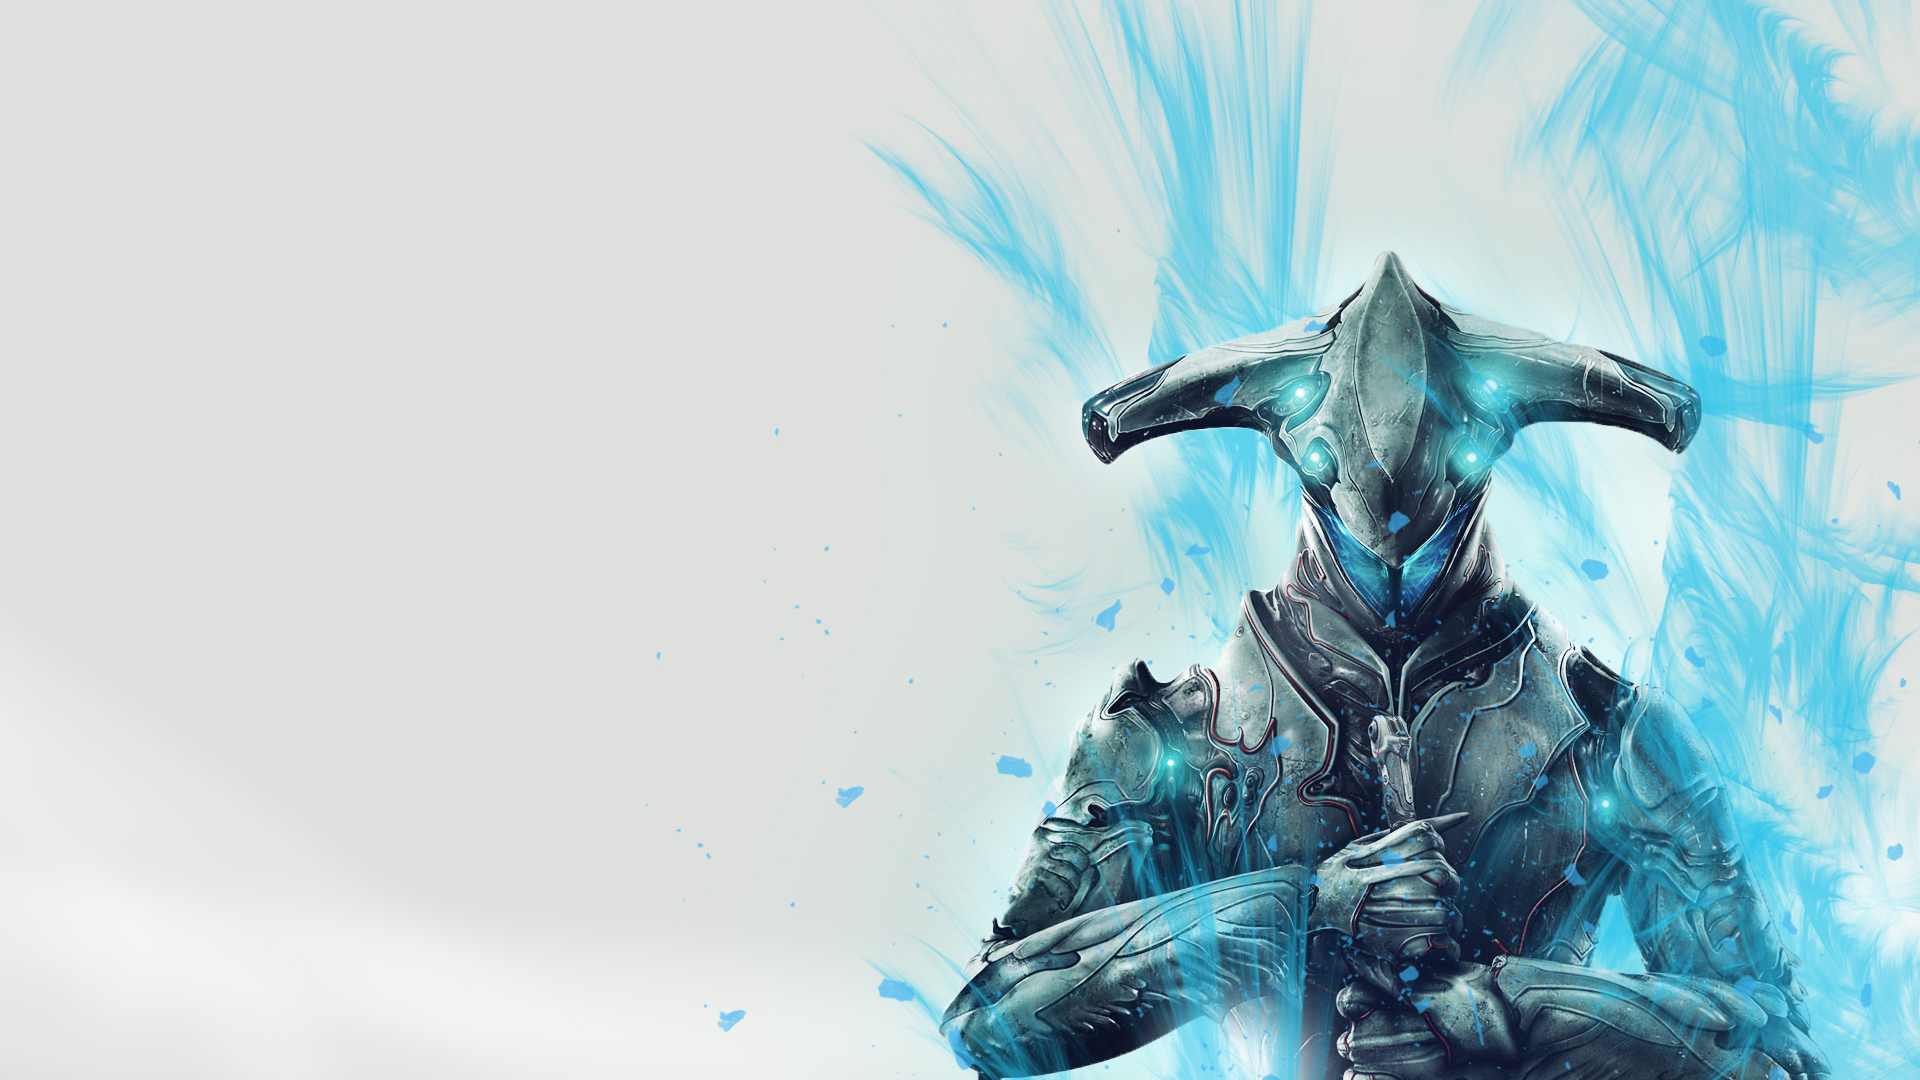 LOKI warframe wallpaper 1080p HD by Potatoframe on DeviantArt